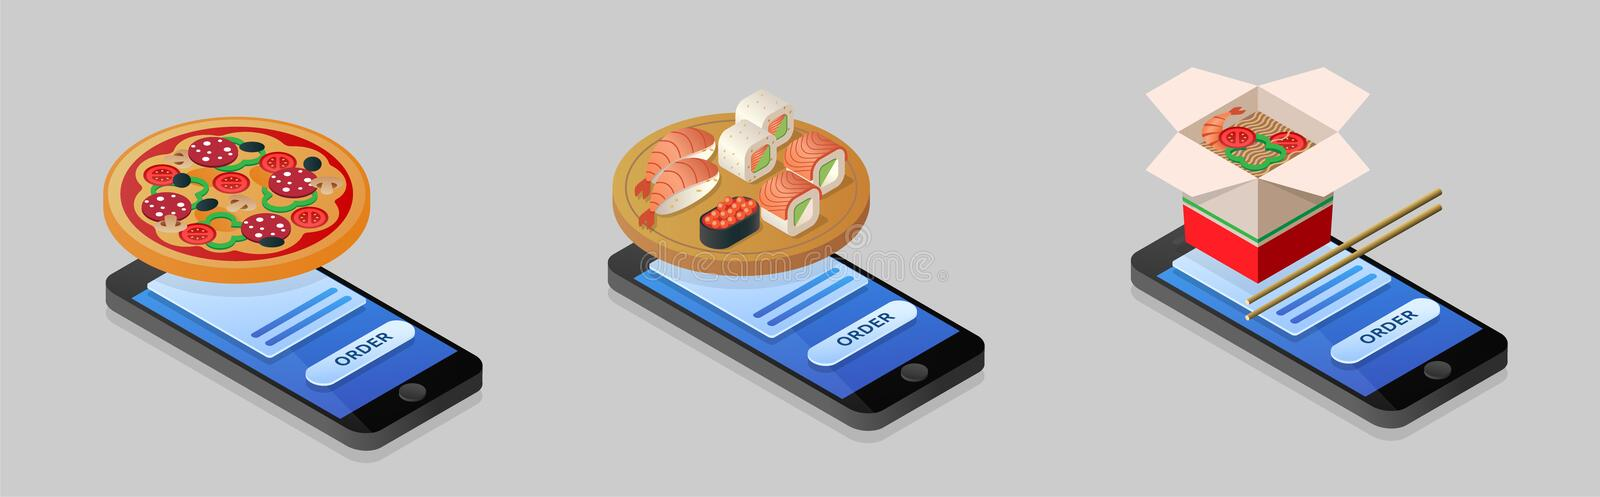 Isometric illustration of ordering pizza, sushi, noodles using s vector illustration